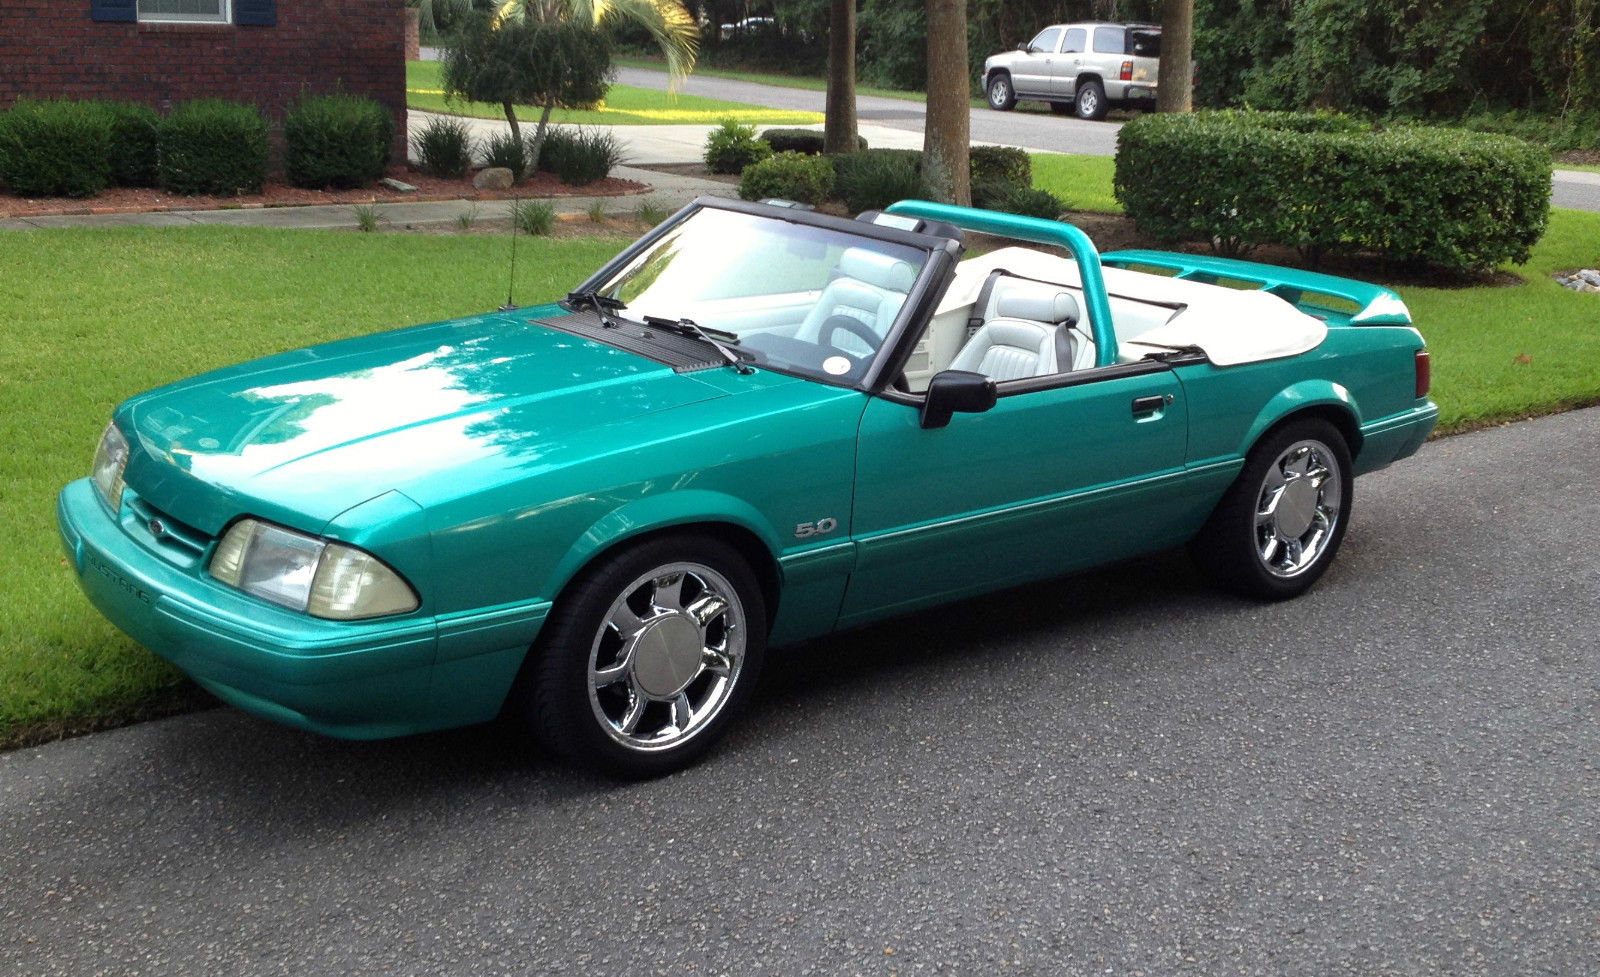 Foxbody convertible calypso green mustang for sale in myrtle beach south carolina united states